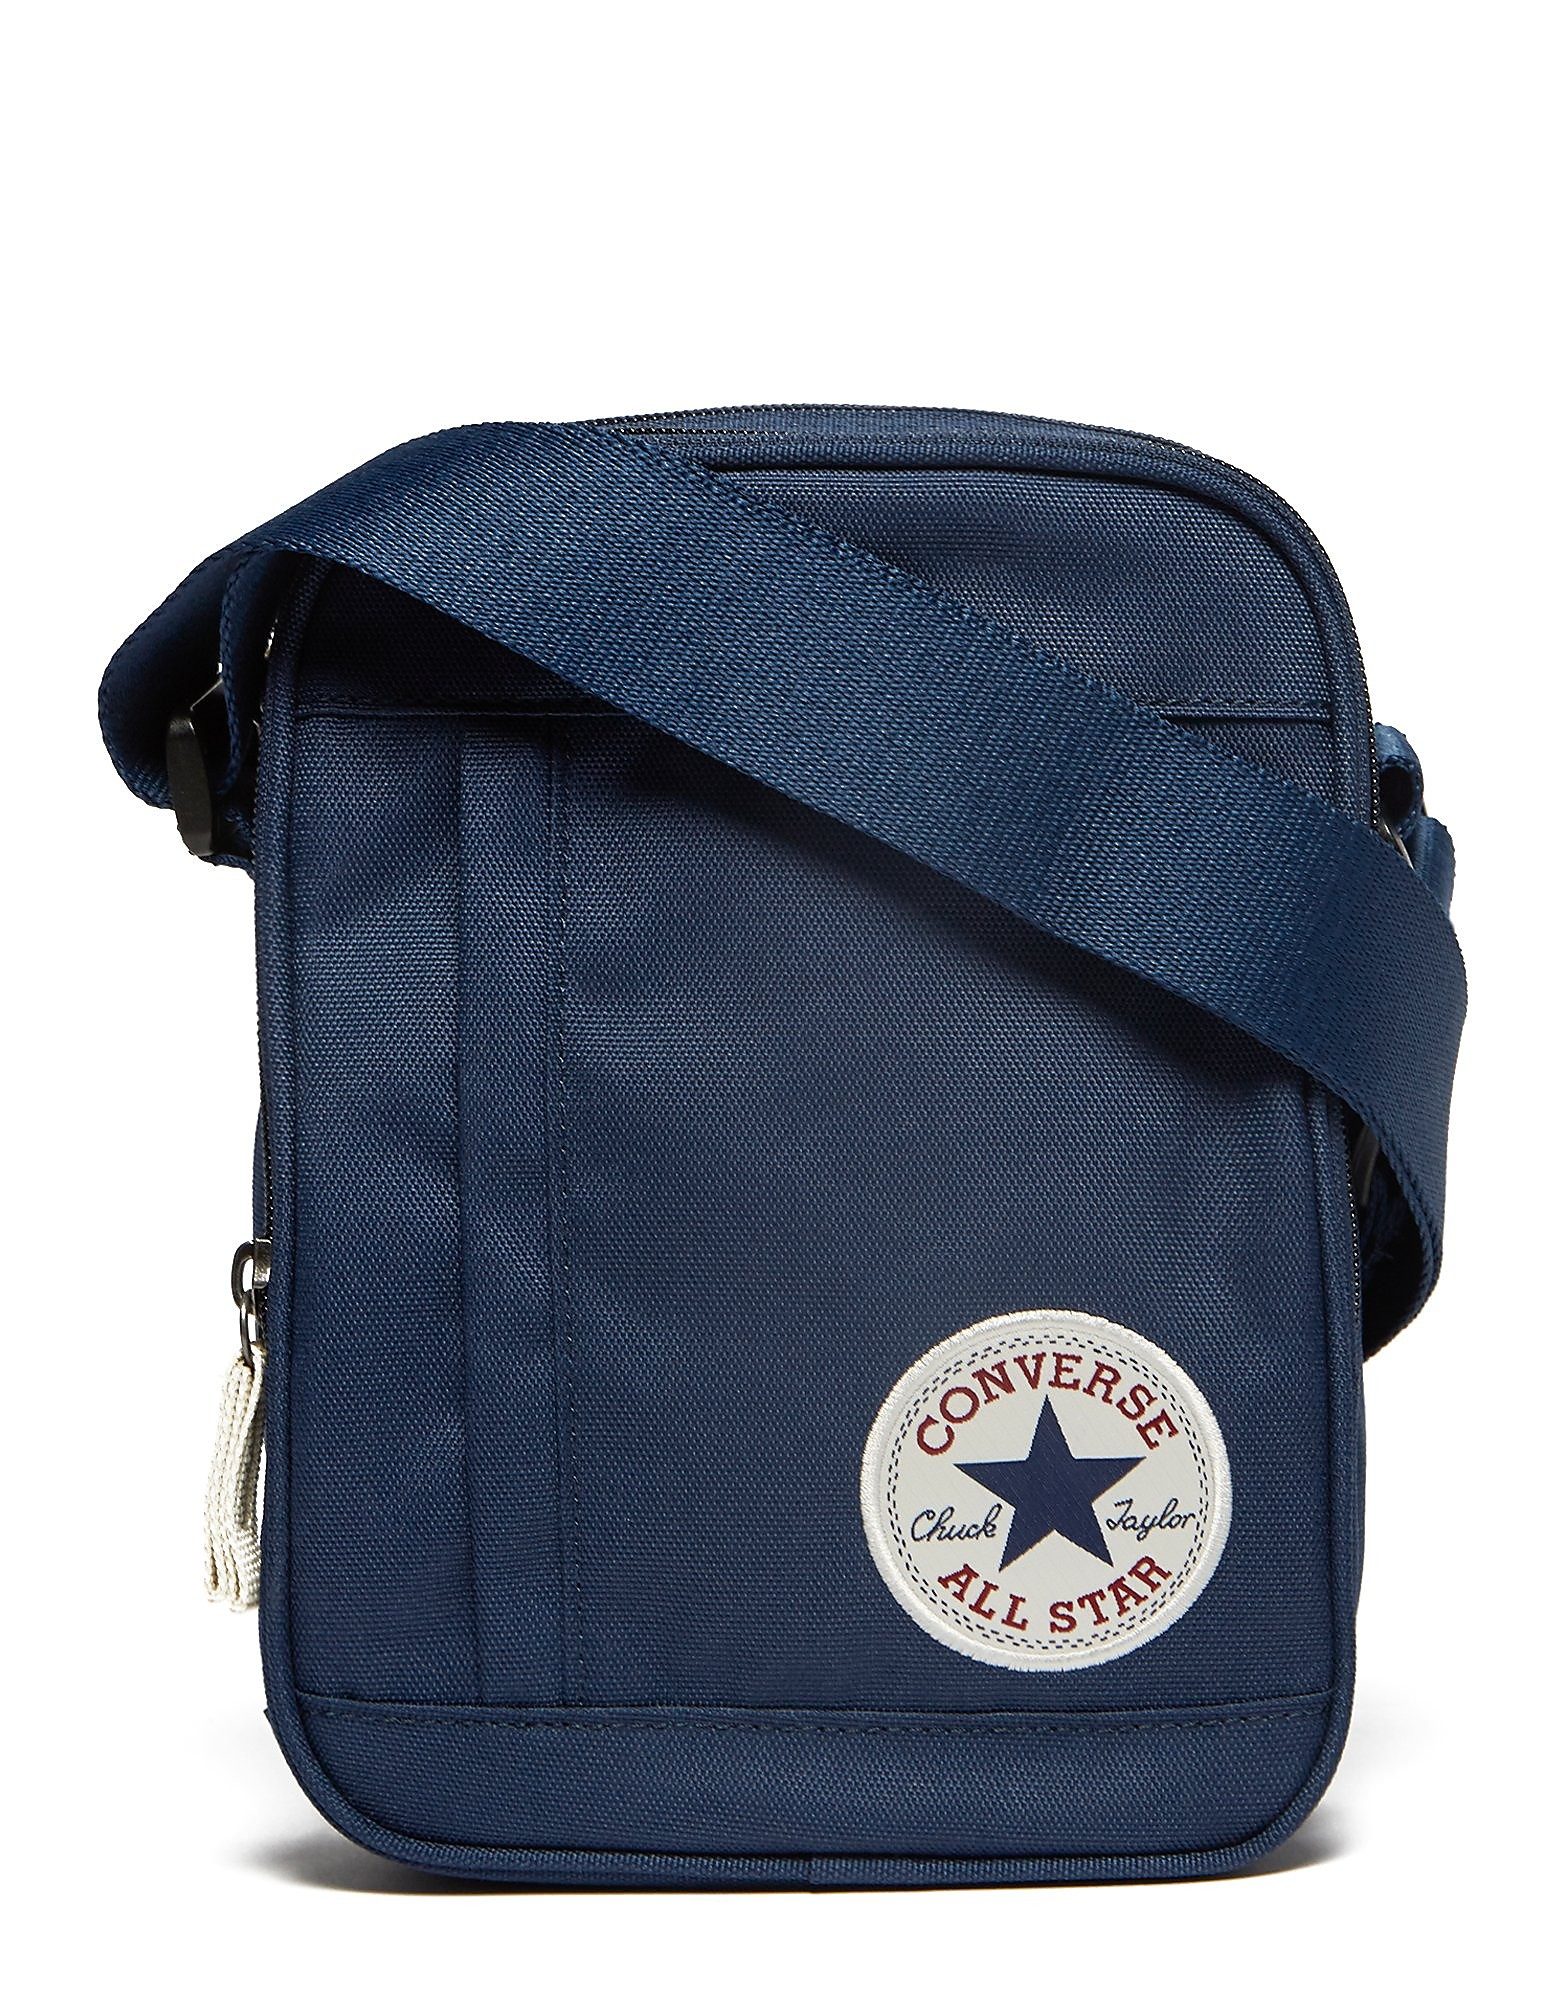 Converse Core Small Items Bag - Navy - Mens - Sports King Store 723087208a81c